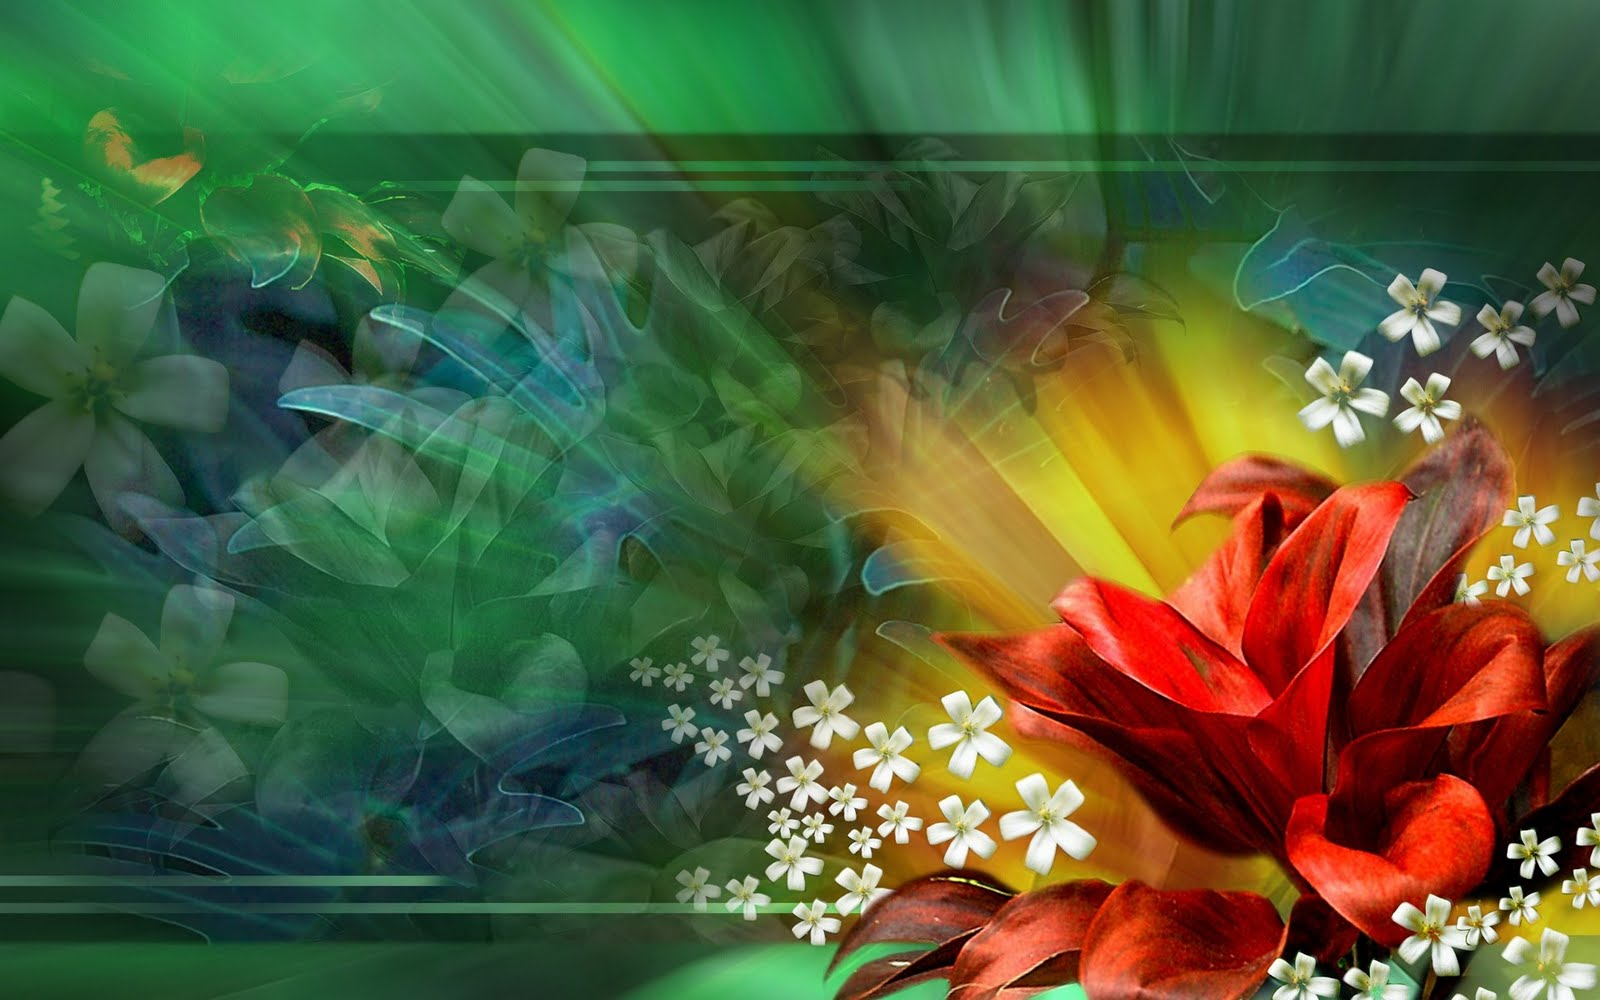 Beautiful Wallpapers For Desktop 2321 Hd Wallpapers in Others 1600x1000